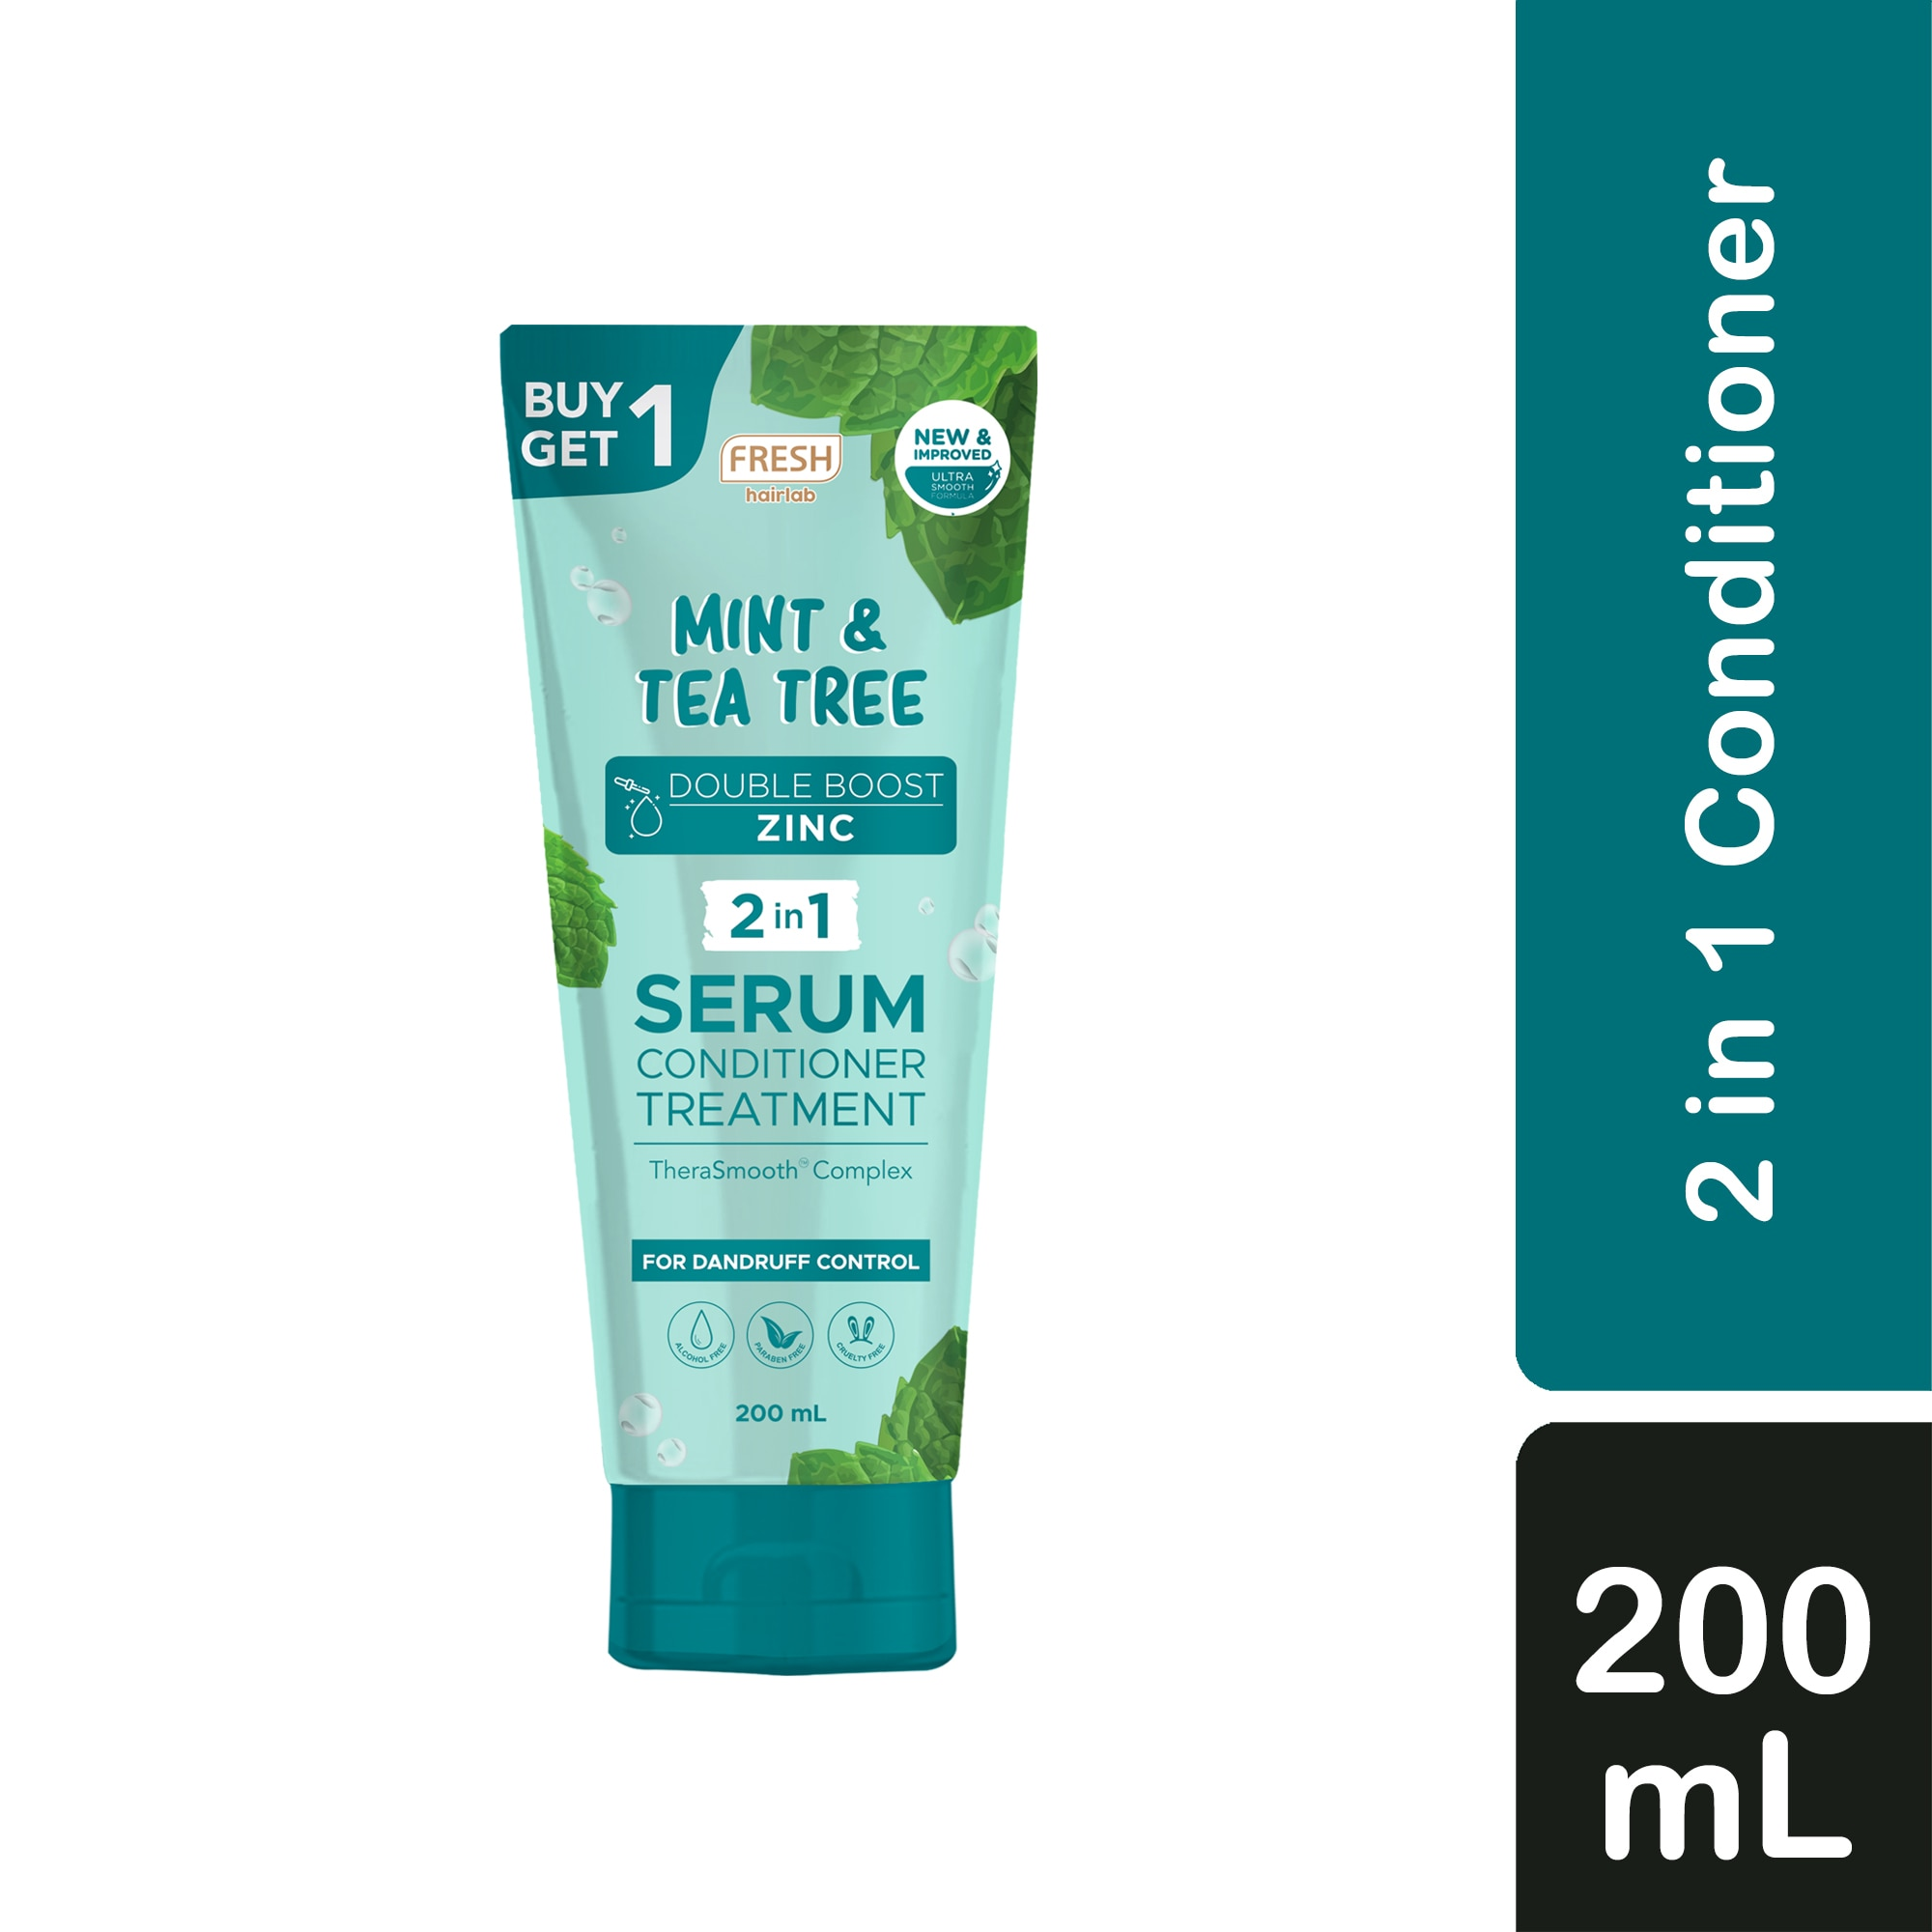 Hairlab Mint and Tea Tree Double Boost Zinc 2 in 1 Serum Conditioner Treatment 200ml